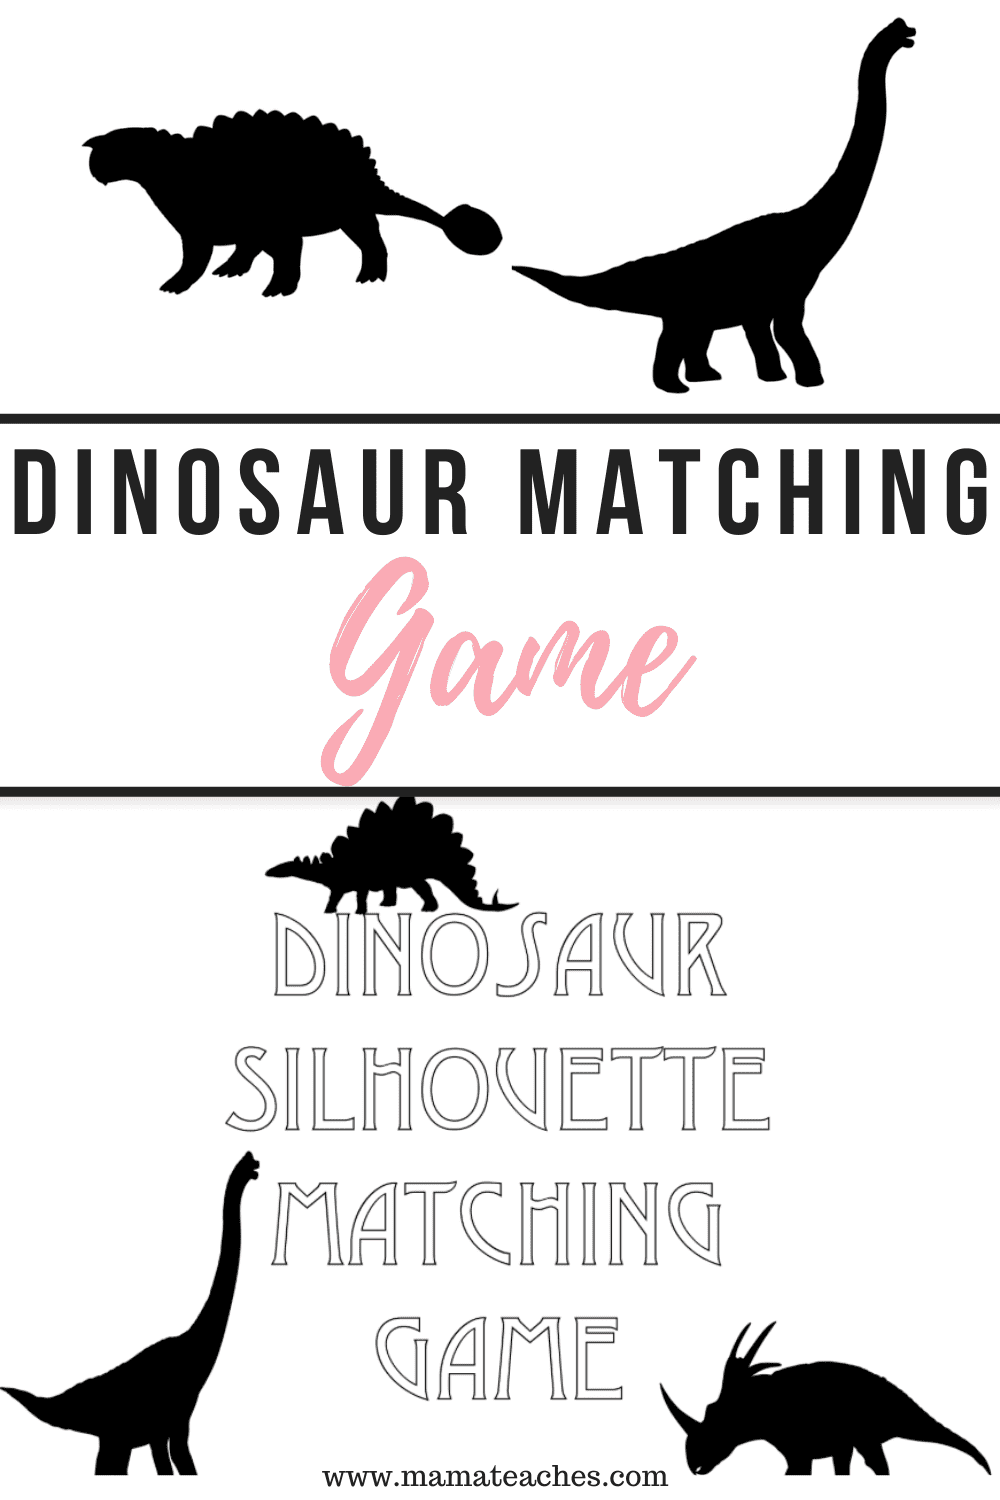 Dinosaur Matching Game Freebie from MamaTeaches.com